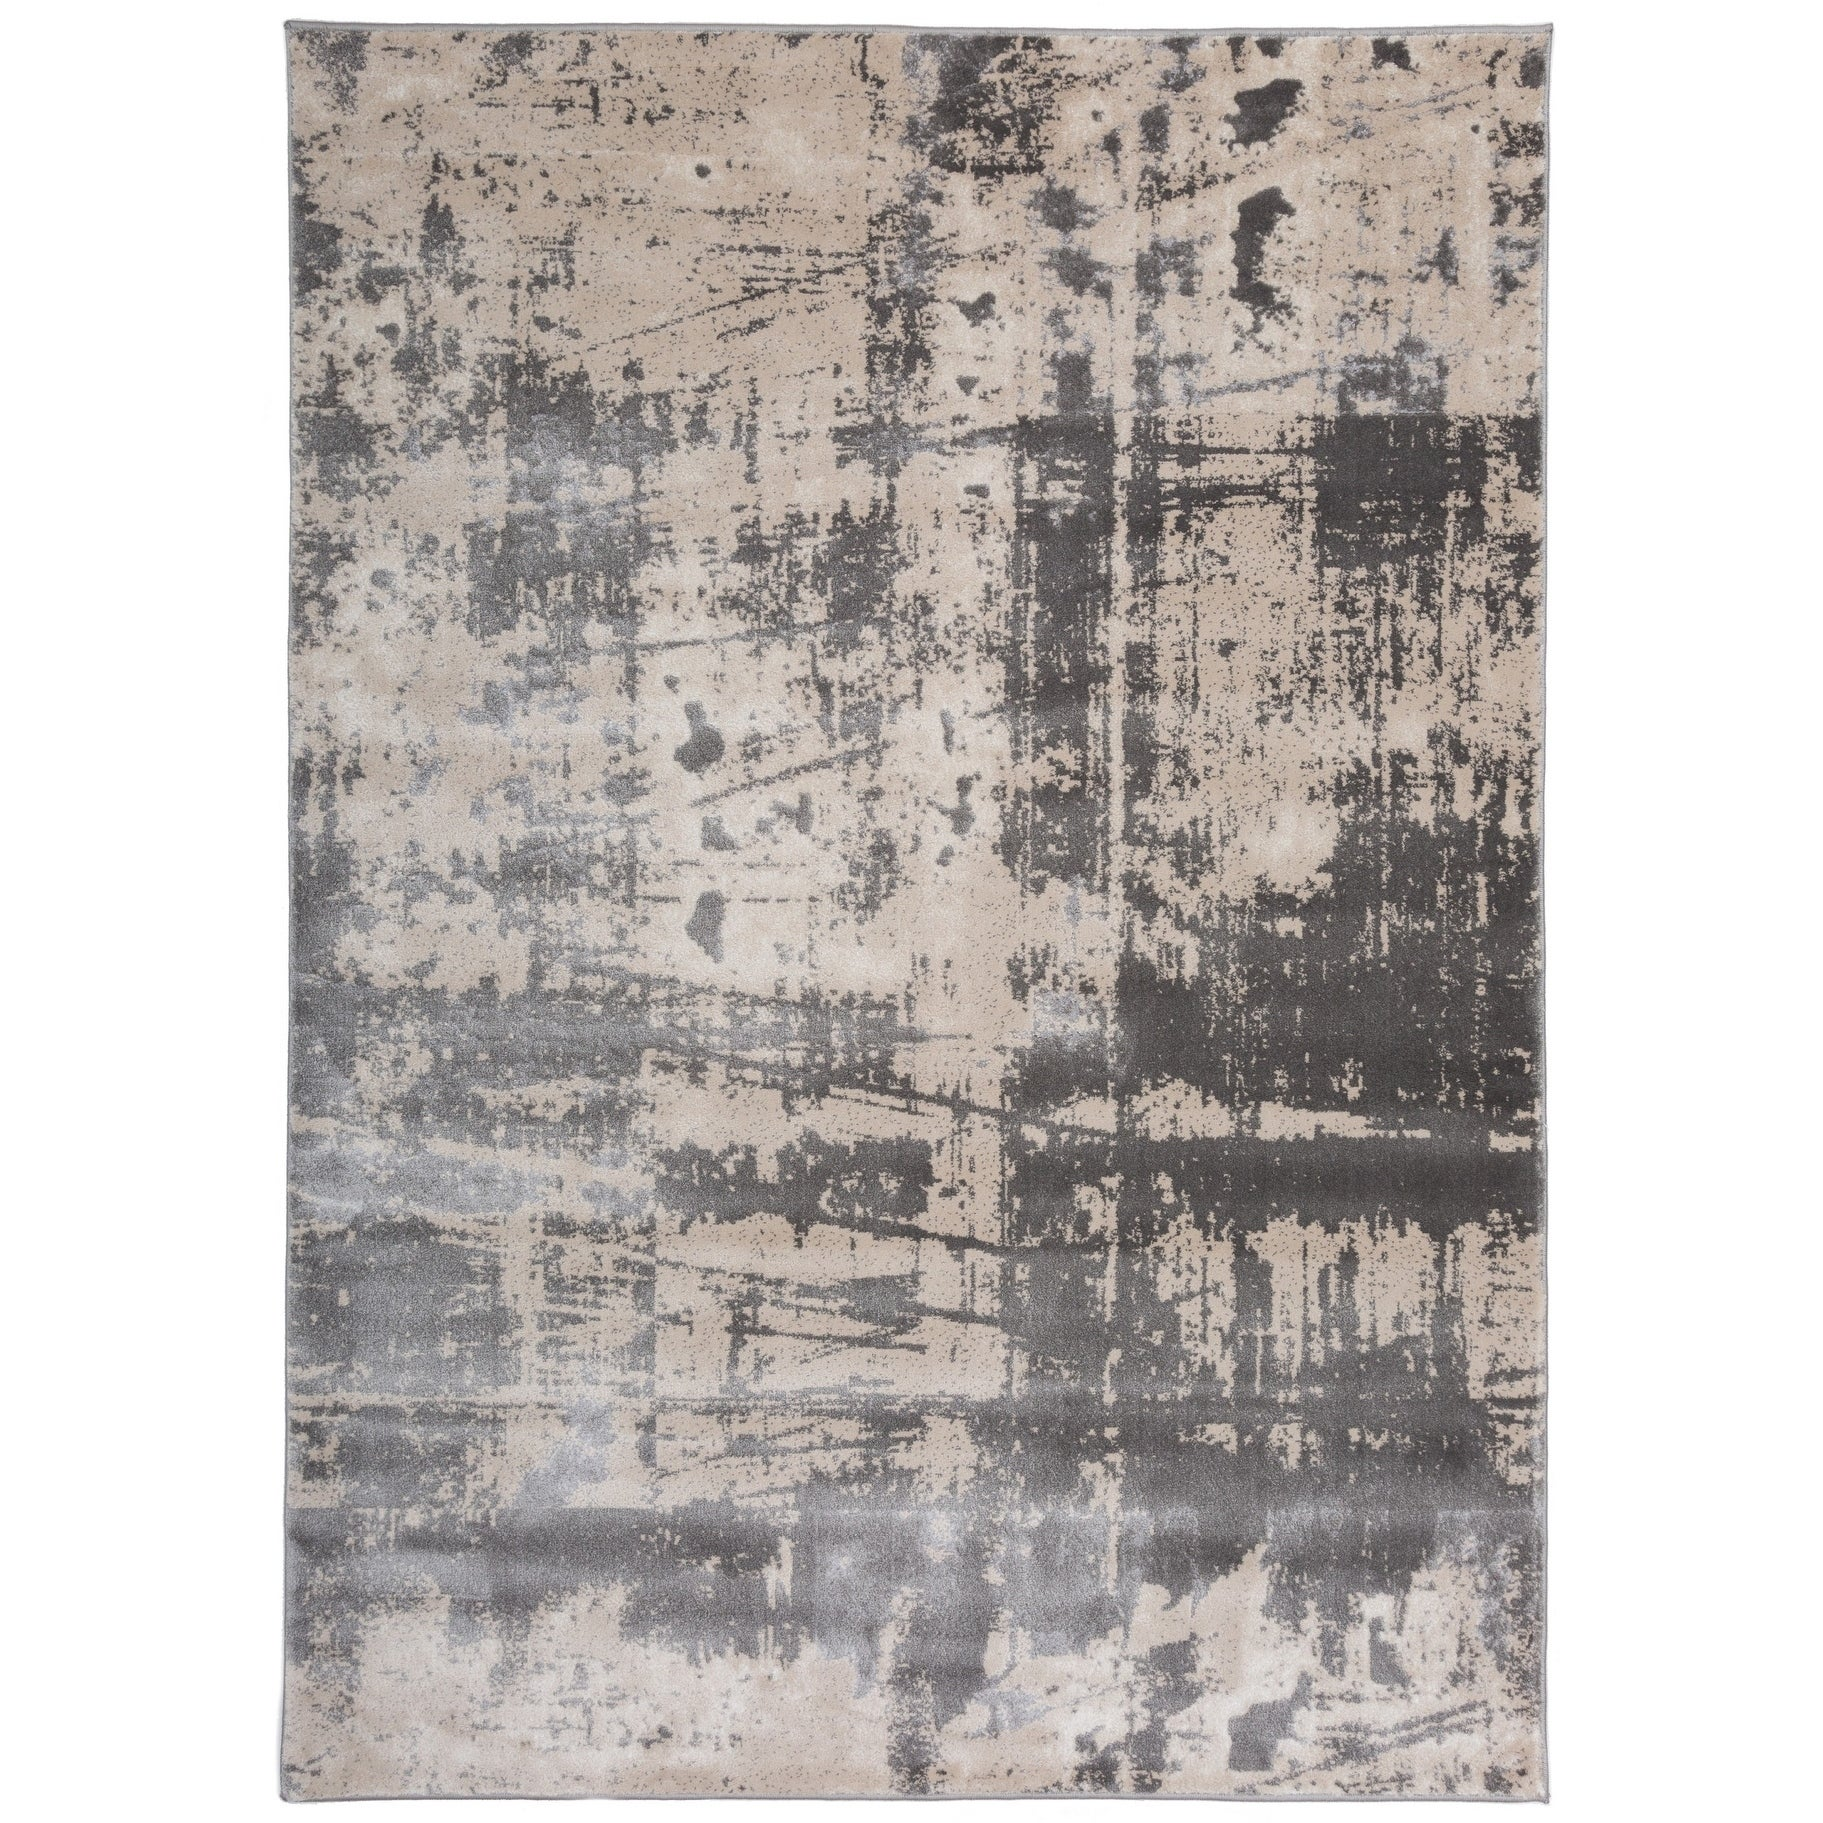 Distressed Modern Abstract Gray High Low Texture Area Rug 7 X 10 Free Shipping Today Com 24646546